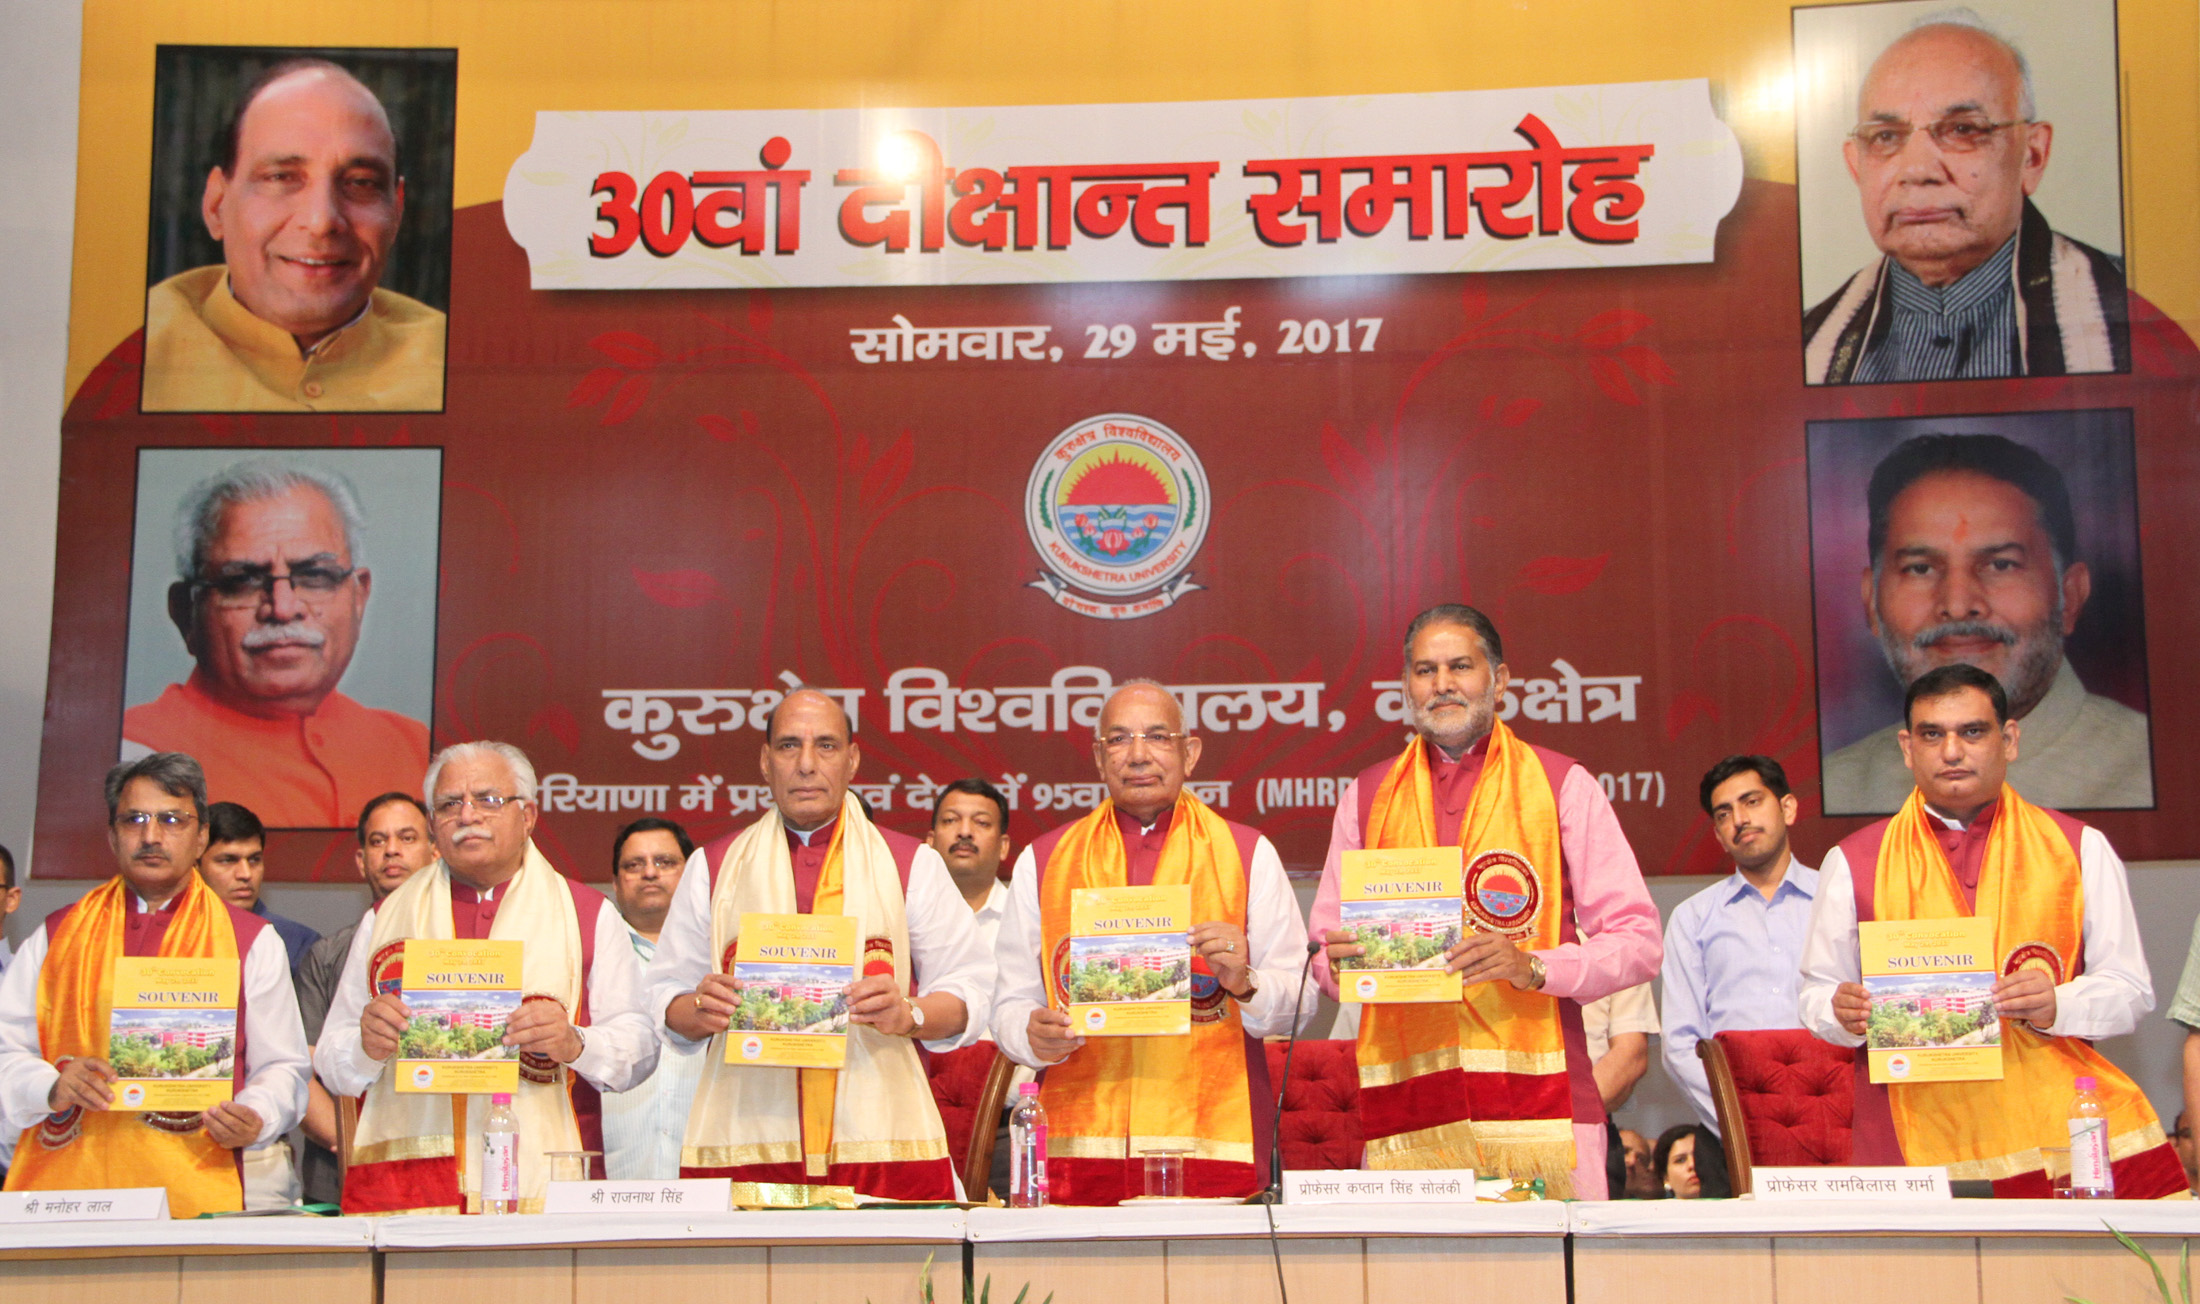 The Union Home Minister, Shri Rajnath Singh releasing the Souvenir at the 30th Convocation of Kurukshetra University, at Kurukshetra, Haryana on May 29, 2017. The Governor of Haryana, Prof. Kaptan Singh Solanki and the Chief Minister of Haryana, Shri Manohar Lal Khattar are also seen.